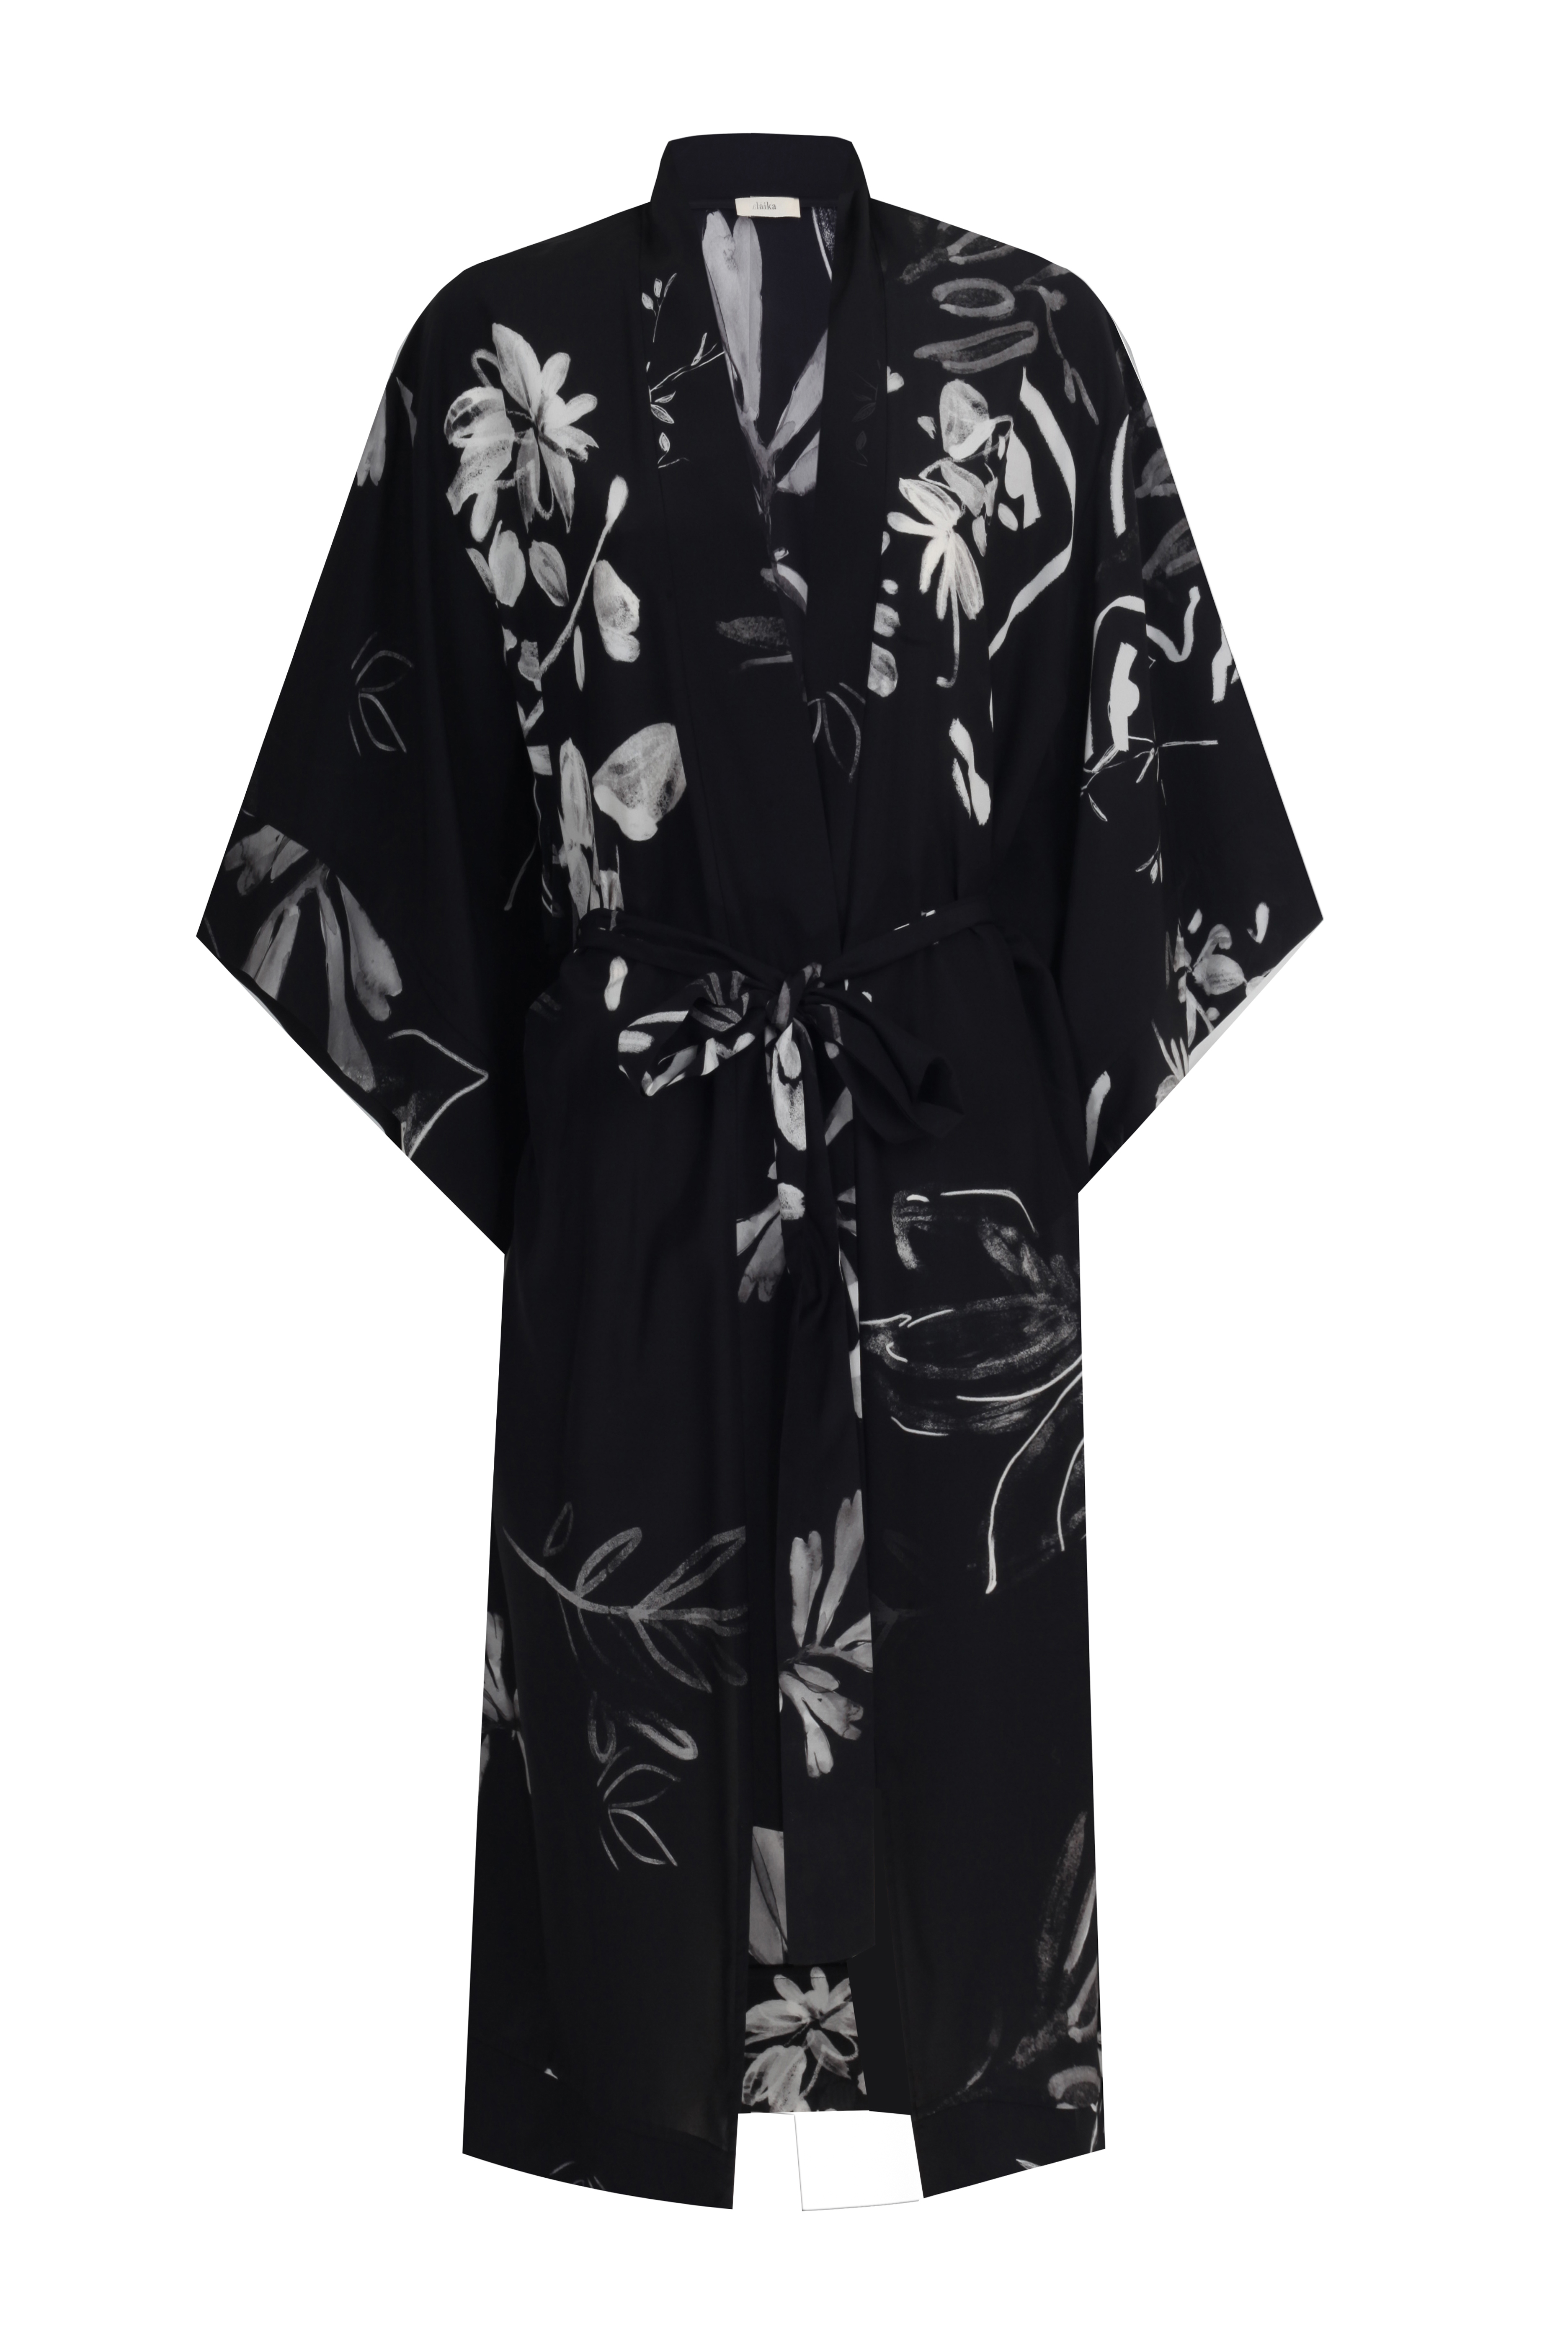 Yoko Kimono - Black by Laika on curated-crowd.com